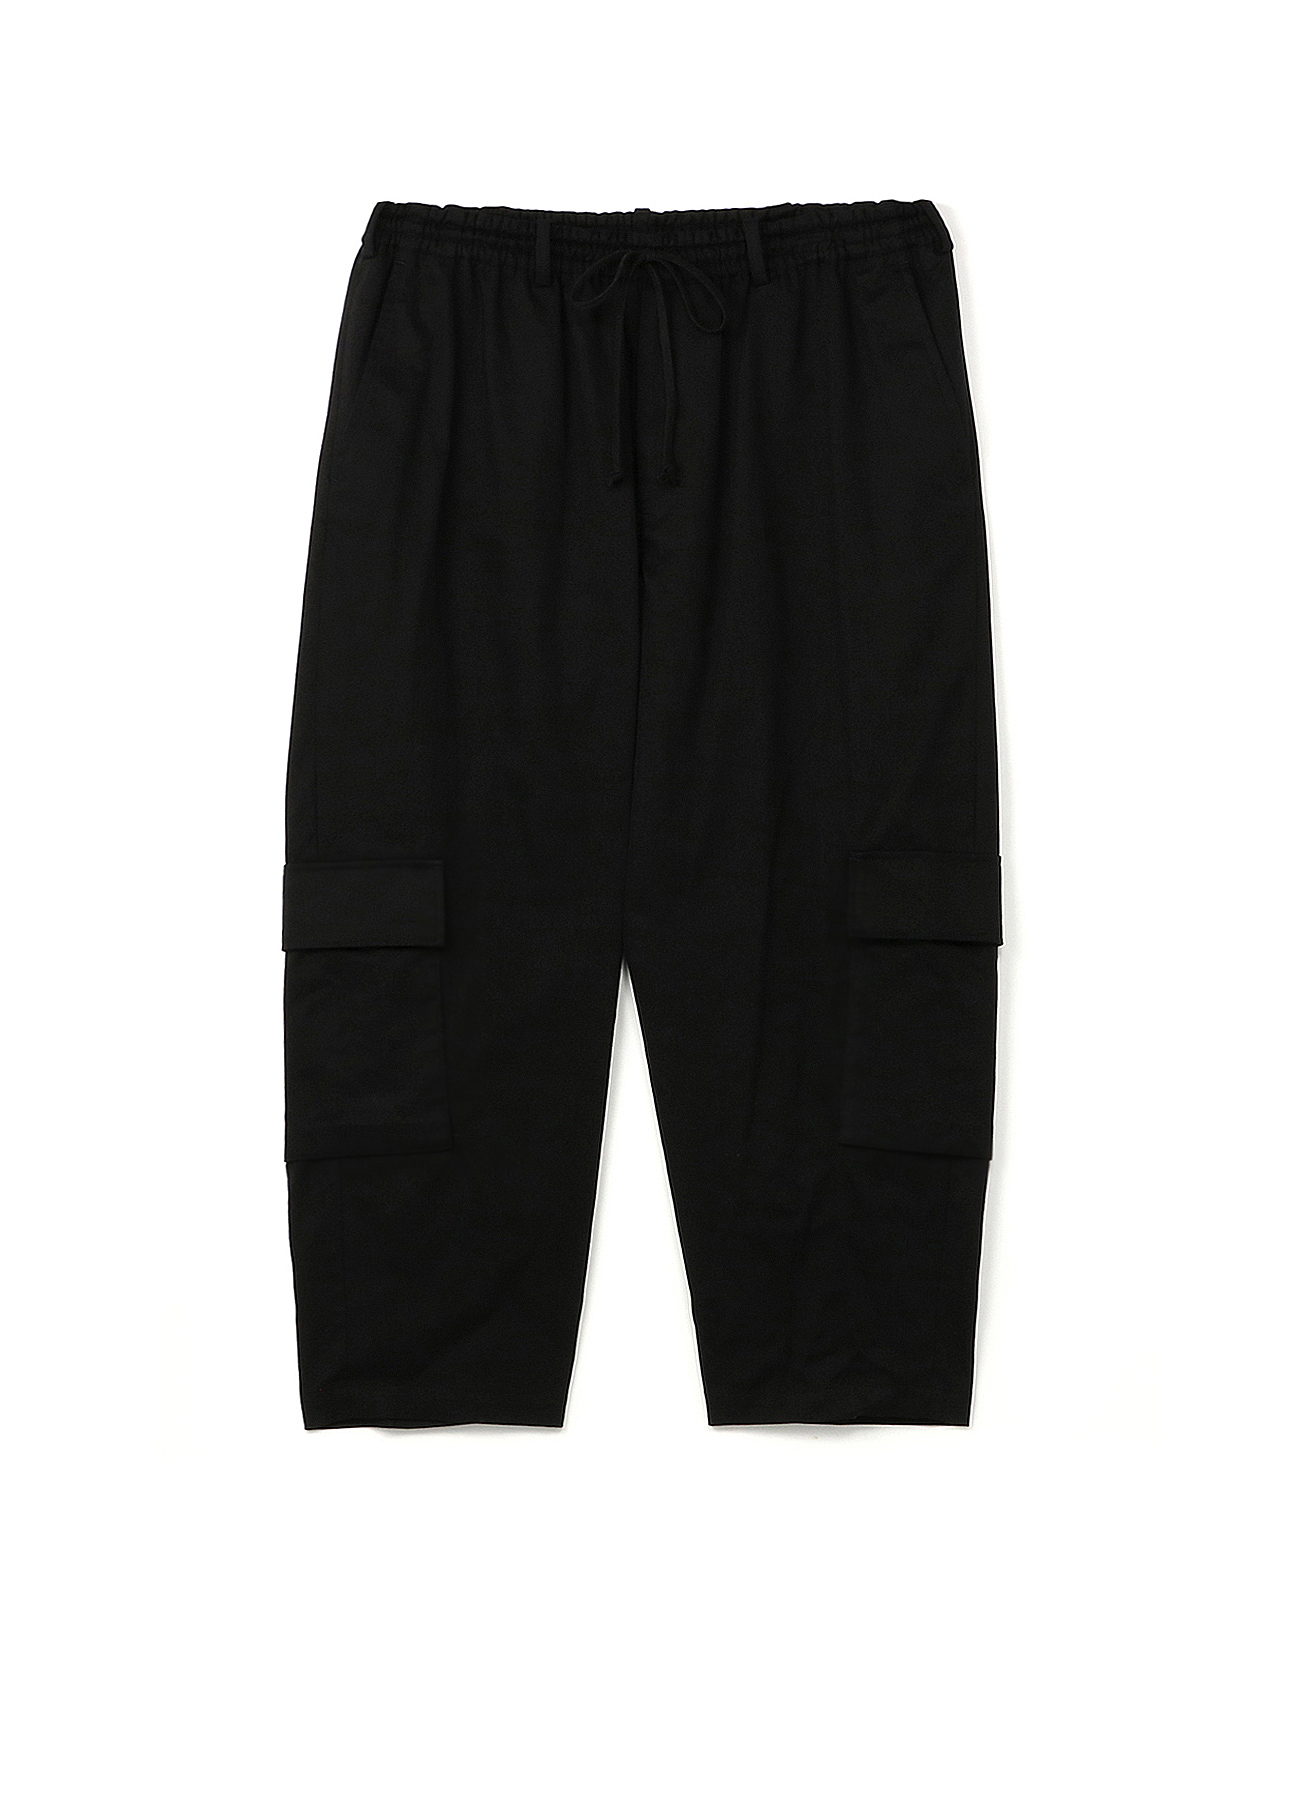 20/Cotton Twill Cargo Pants